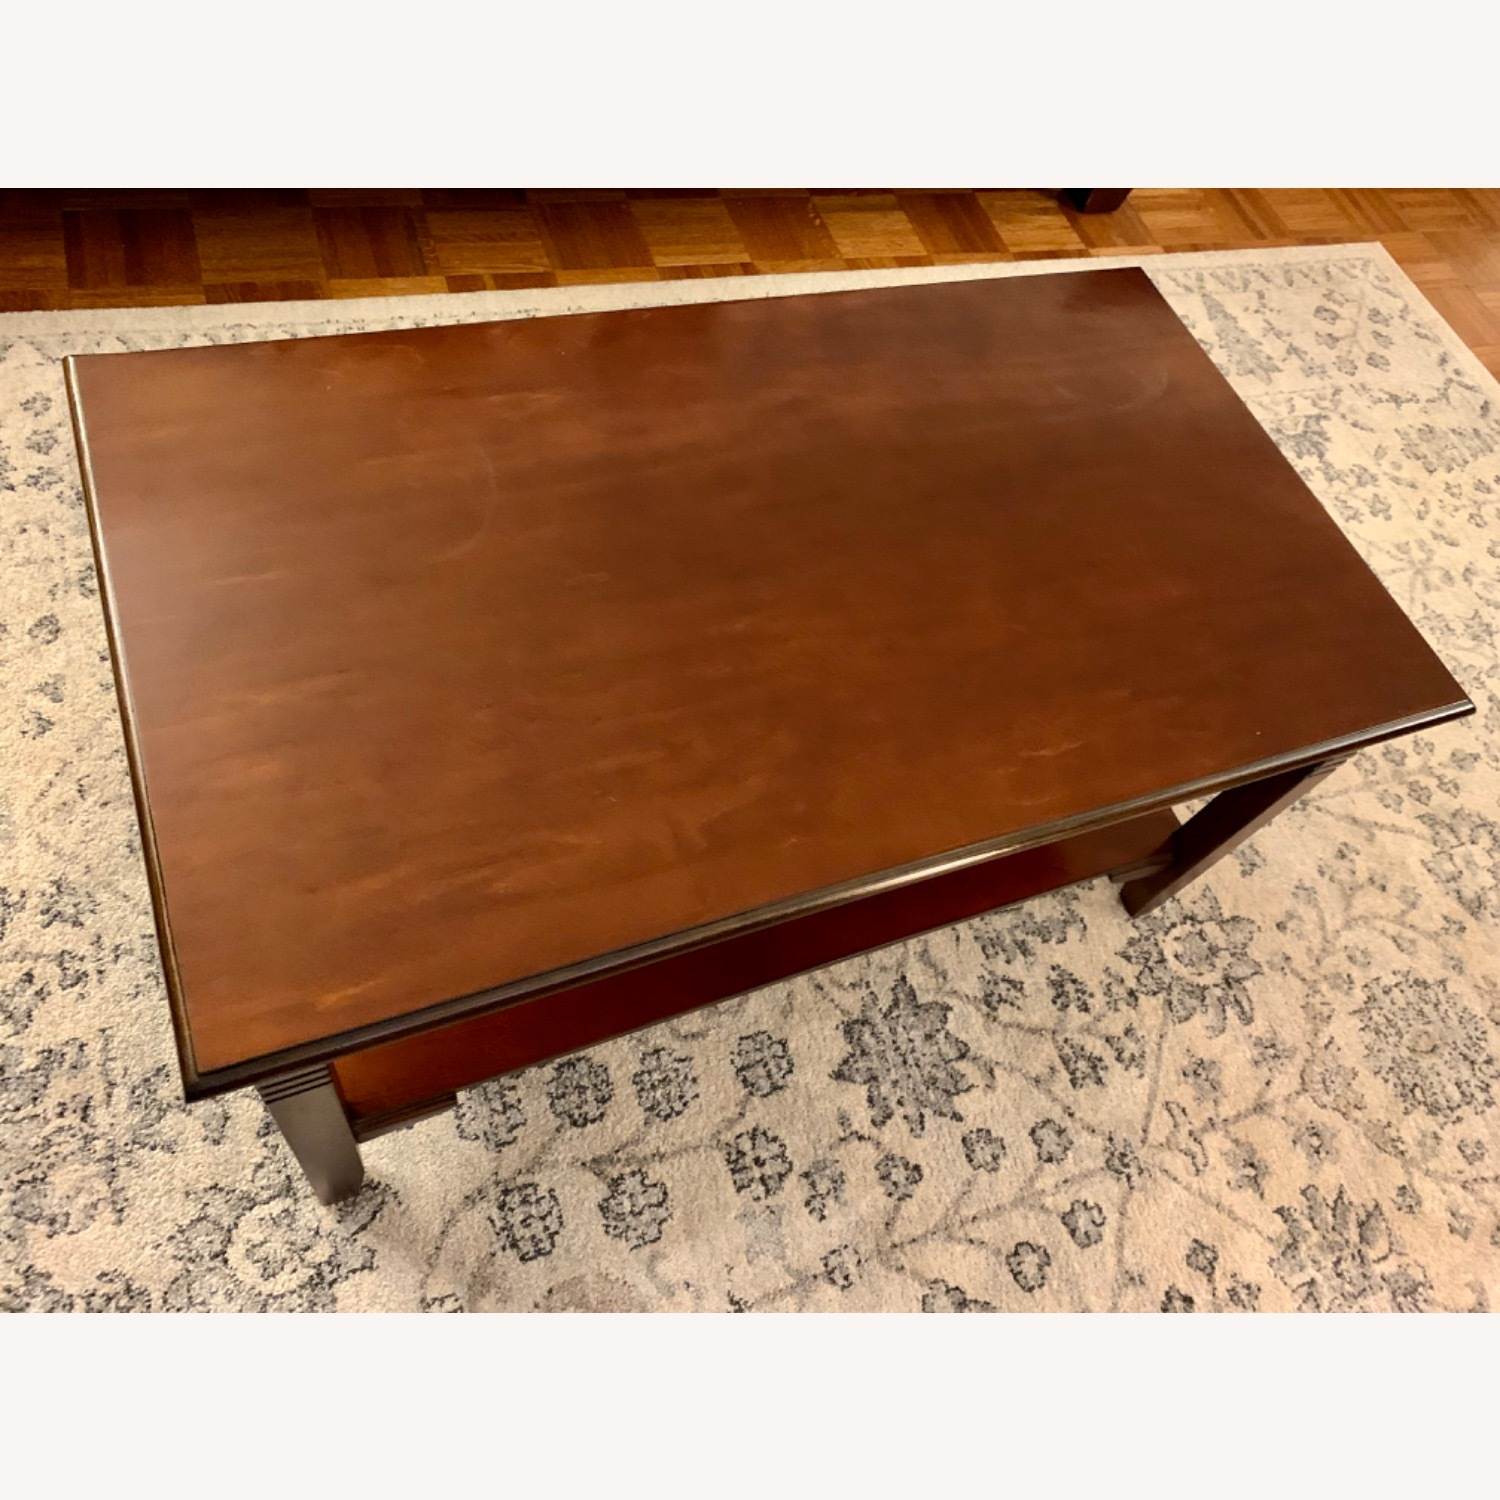 Wayfair Espresso Coffee Table - image-2